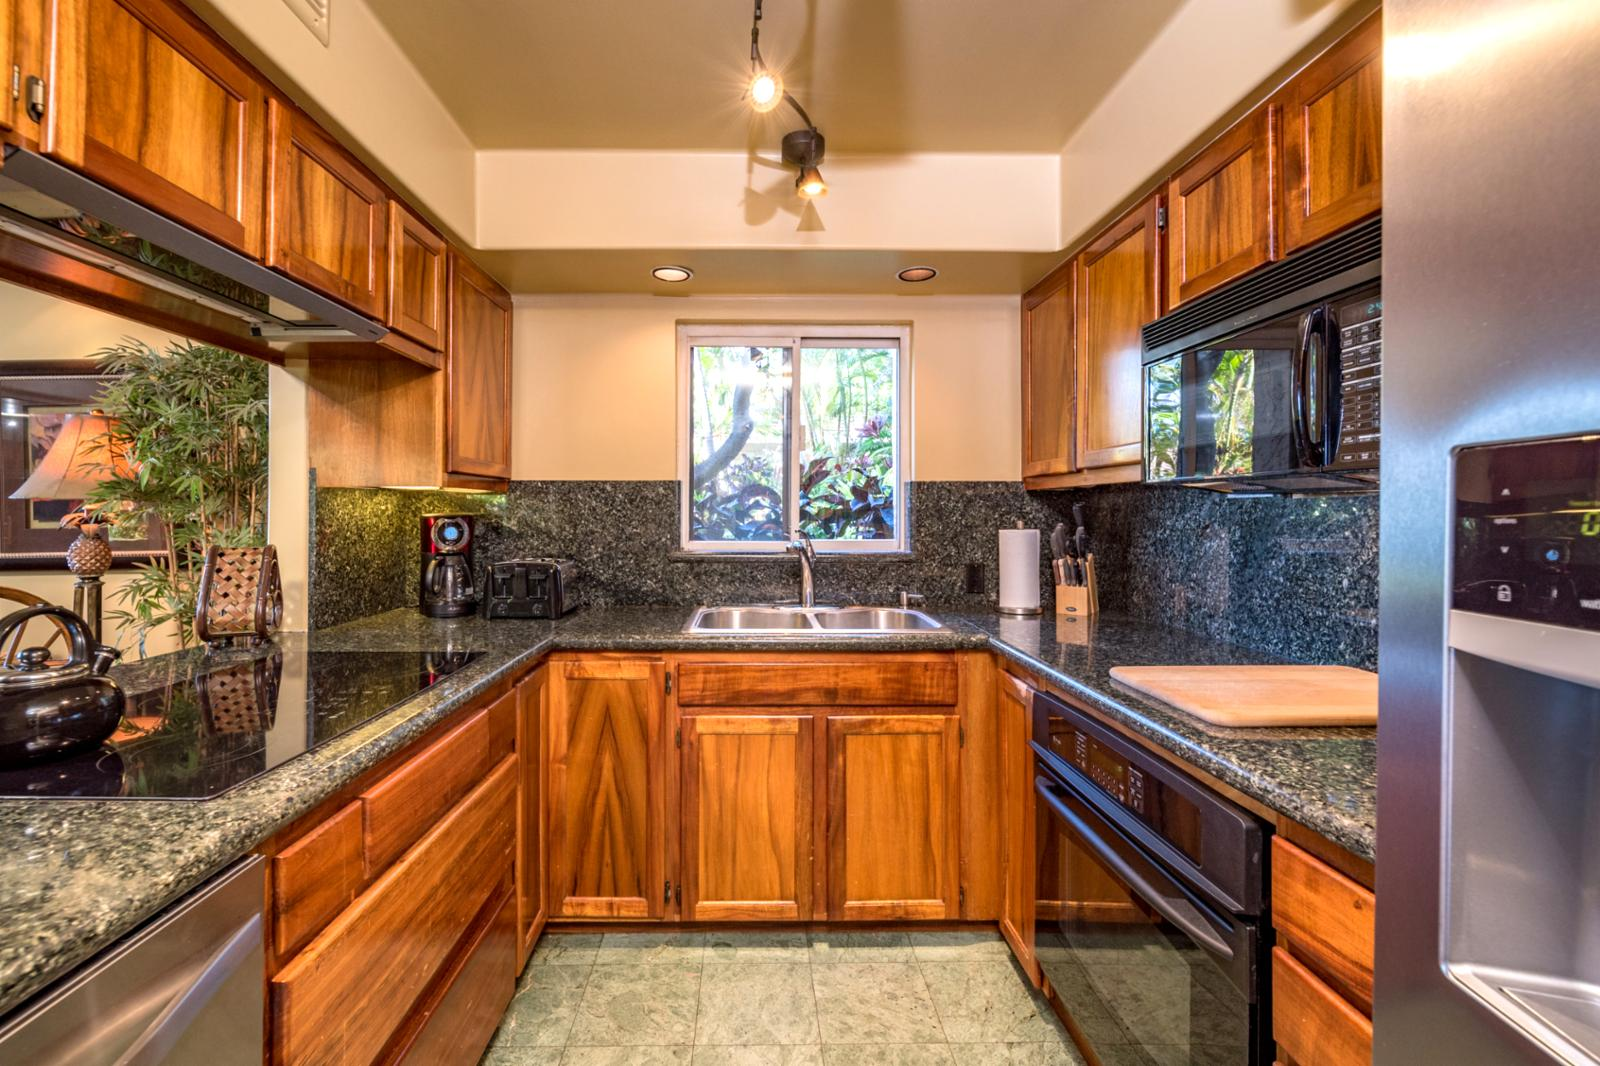 Appliances professionally cleaned between each check in and check out